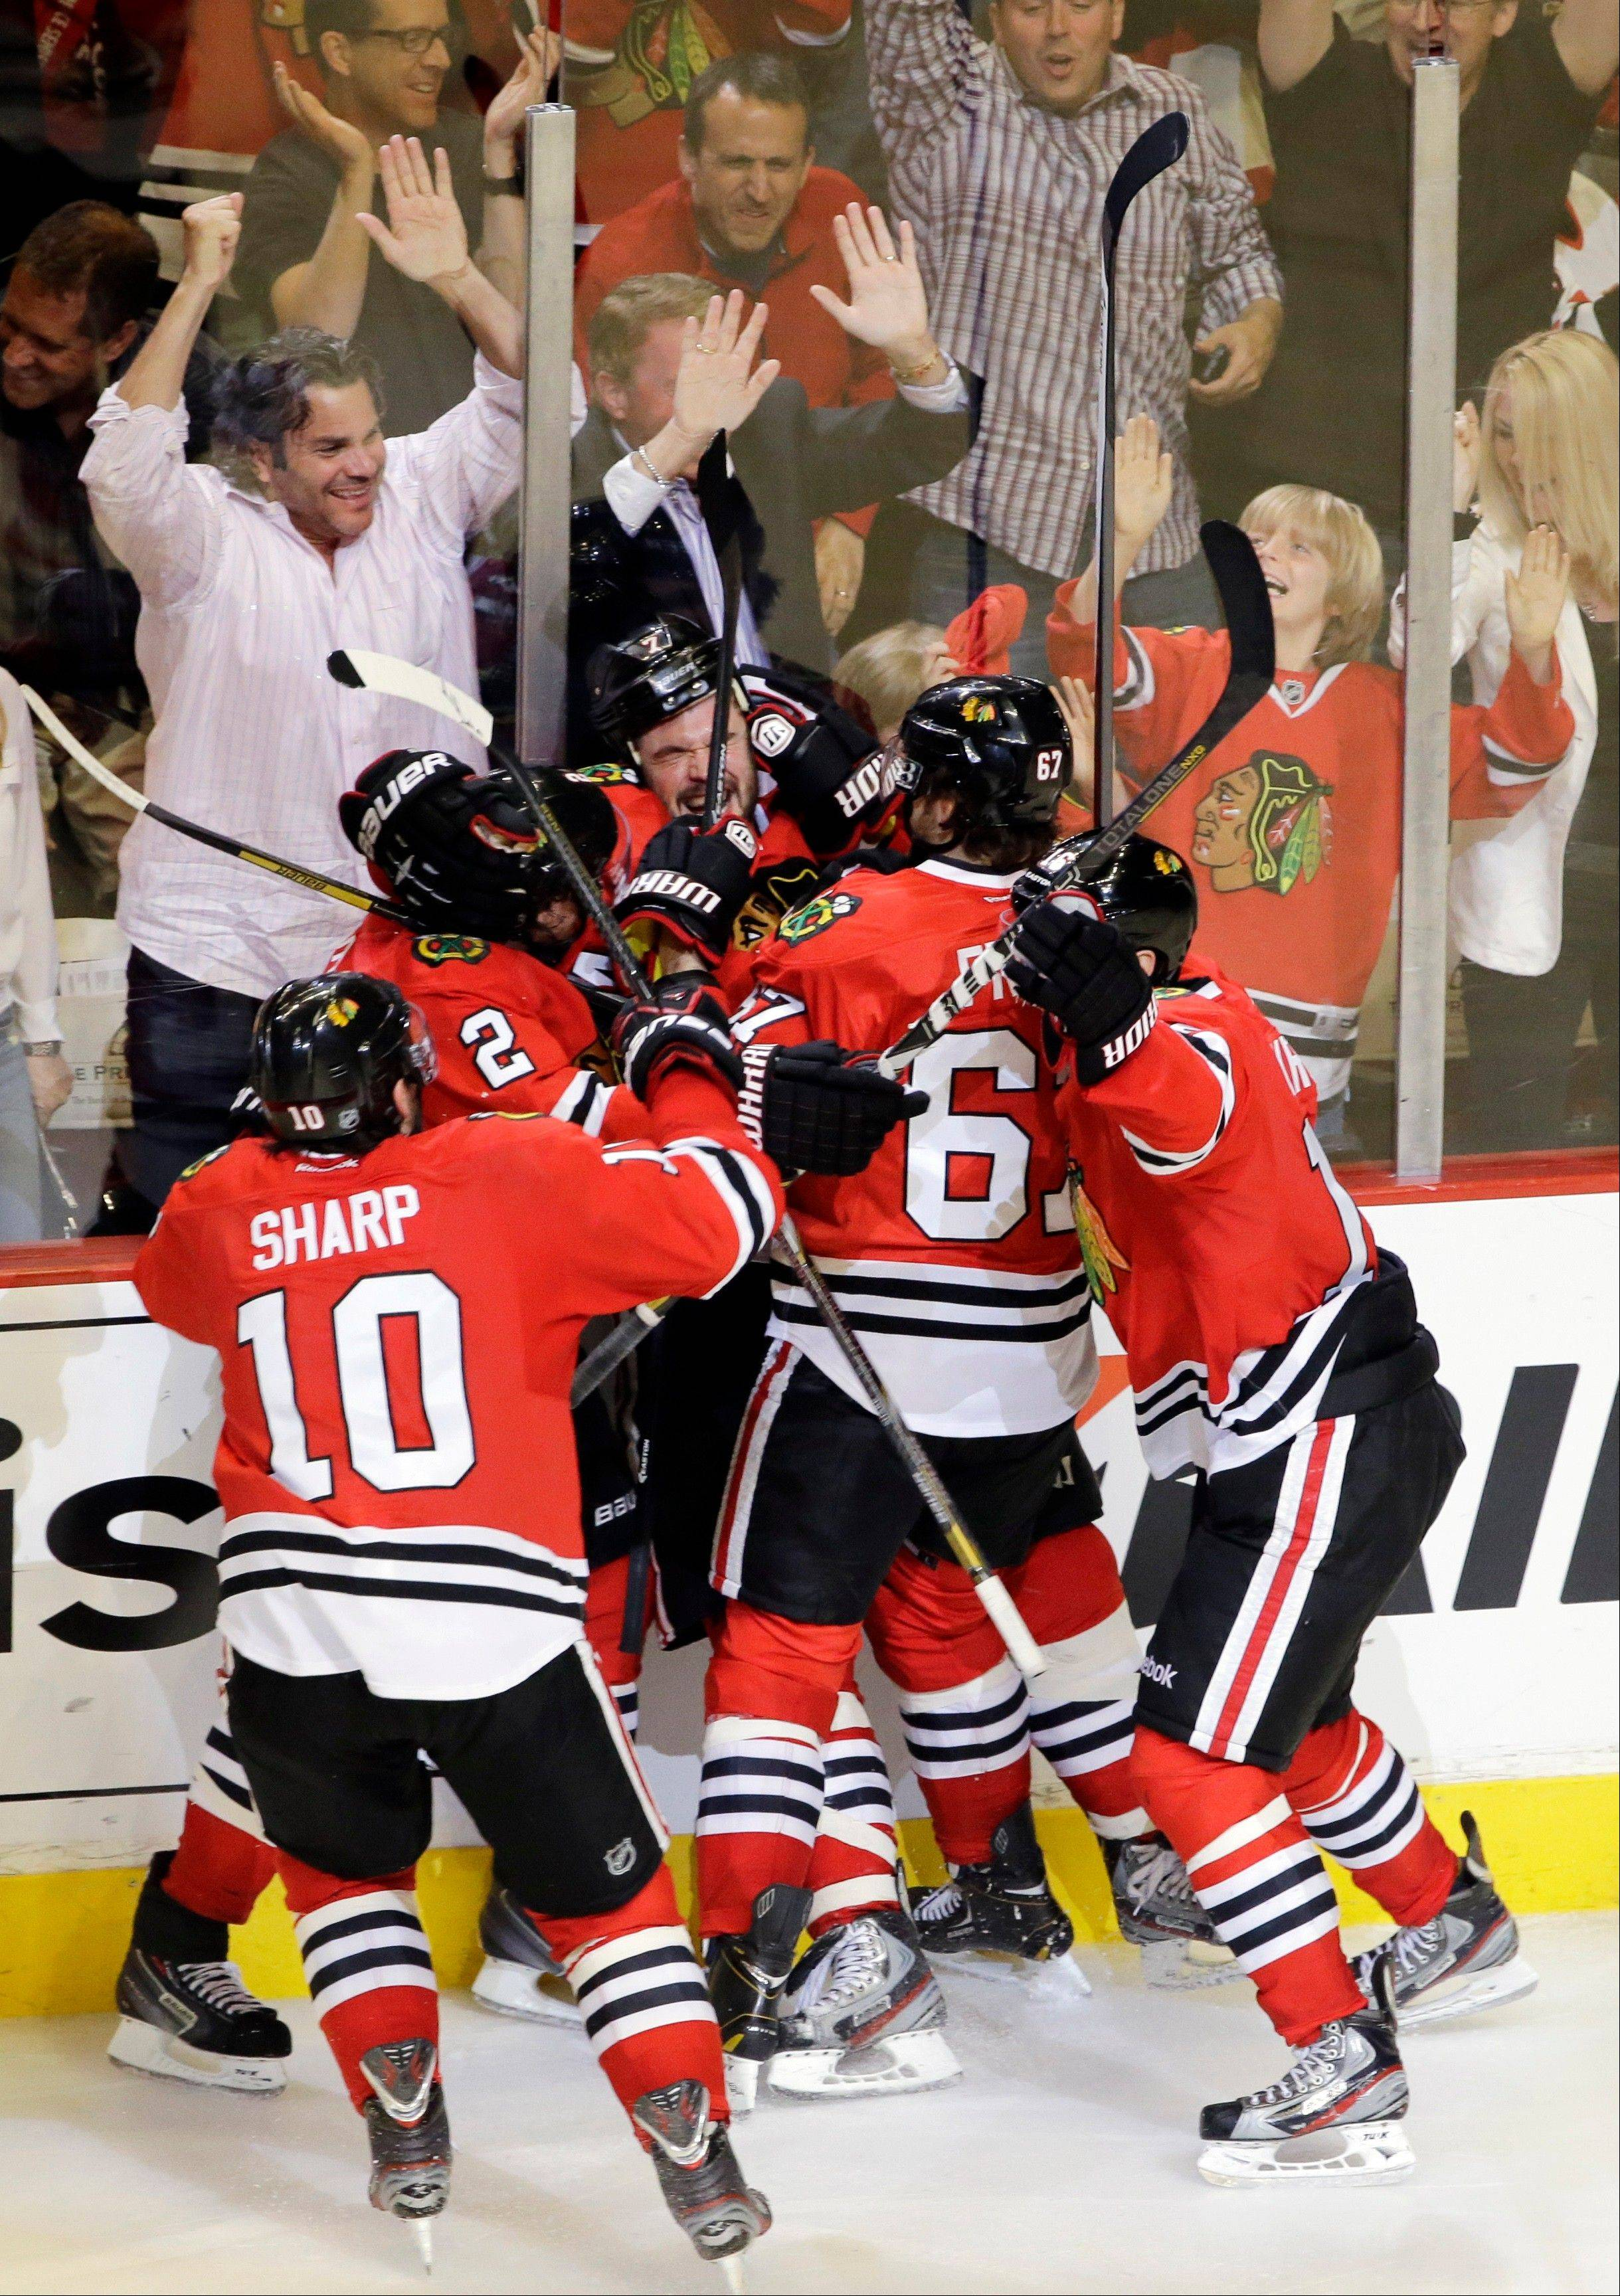 Chicago Blackhawks' Brent Seabrook, pinned to the wall, celebrates with his teammates after scoring in overtime in Game 7 of the NHL hockey Stanley Cup Western Conference semifinals against the Detroit Red Wings, Wednesday, May 29, 2013, in Chicago. The Blackhawks won 2-1.